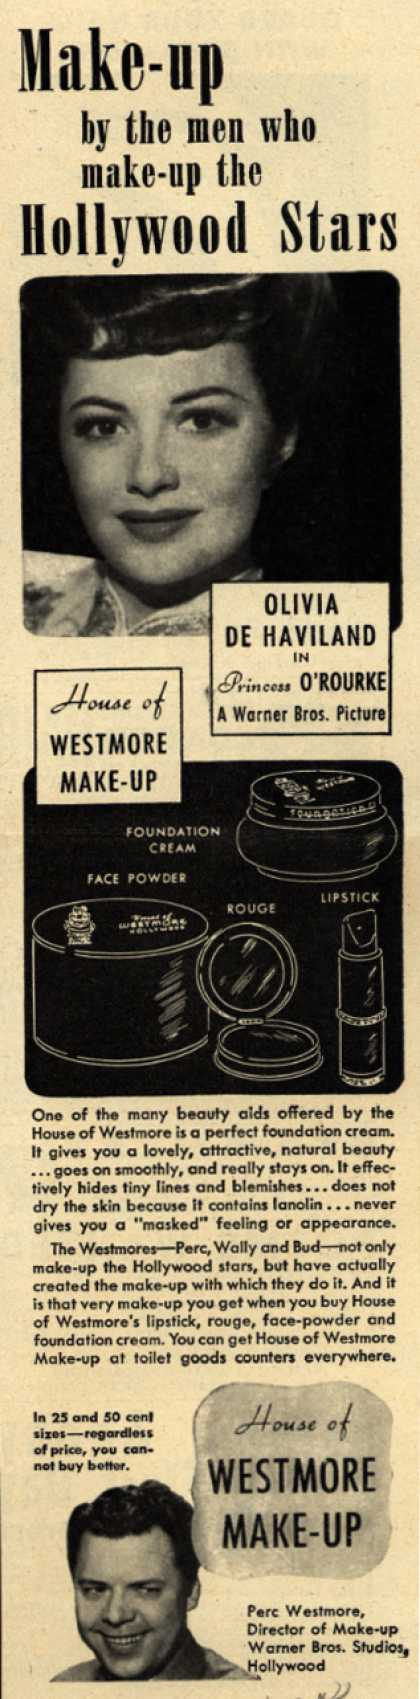 House of Westmore's Cosmetics – Make-up by the men who make-up the Hollywood stars (1944)